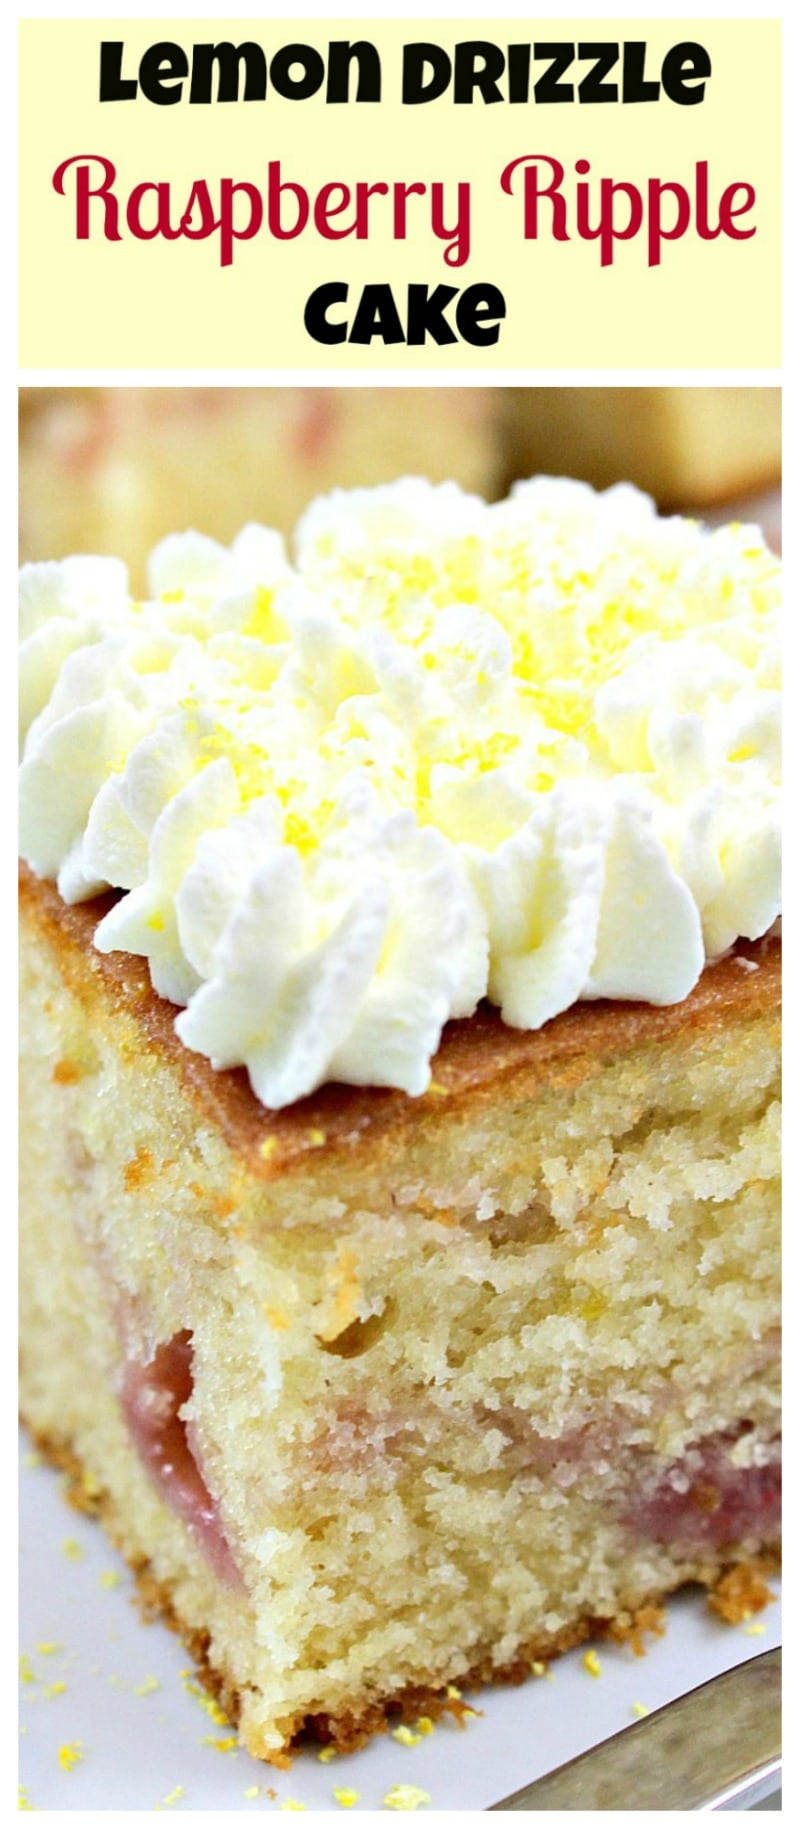 Lemon Drizzle Raspberry Ripple Cake. An easy, soft, moist and great tasting cake, perfect with a cup of tea!